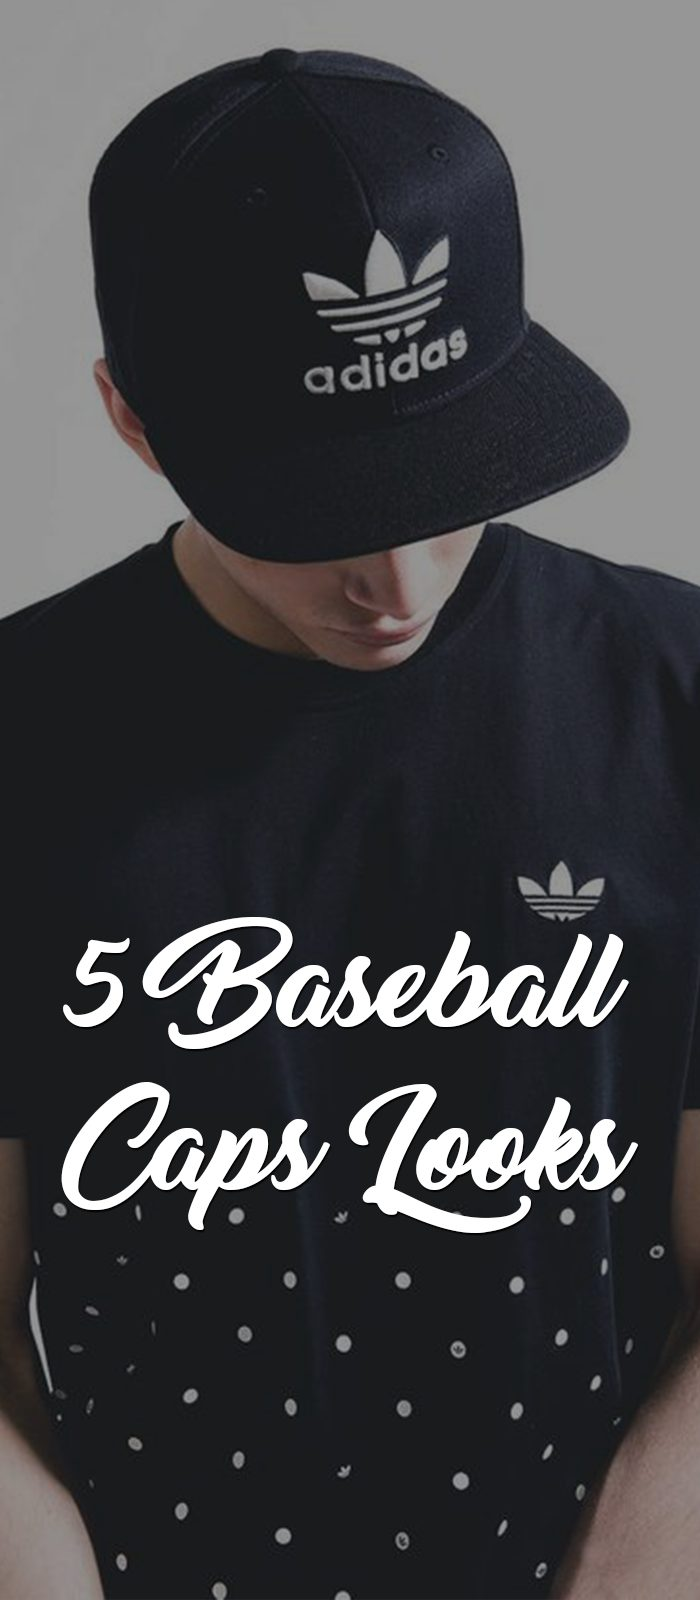 5 Baseball Caps Looks